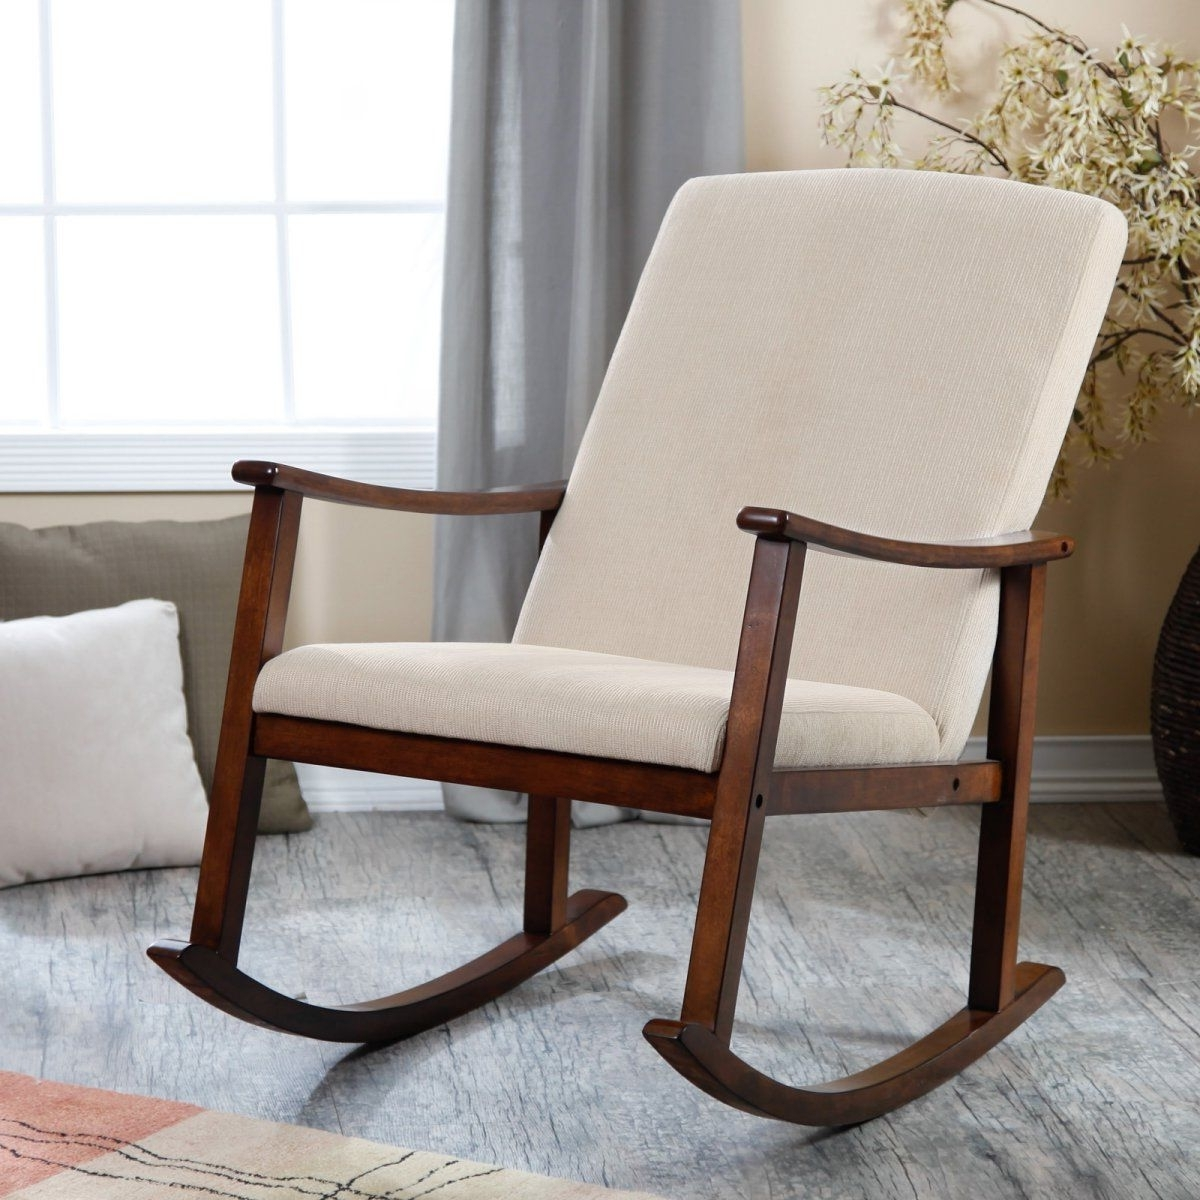 Rocking Chairs For Nursery Regarding Preferred Holden Modern Rocking Chair – Rocking Chairs At Hayneedle (View 7 of 20)